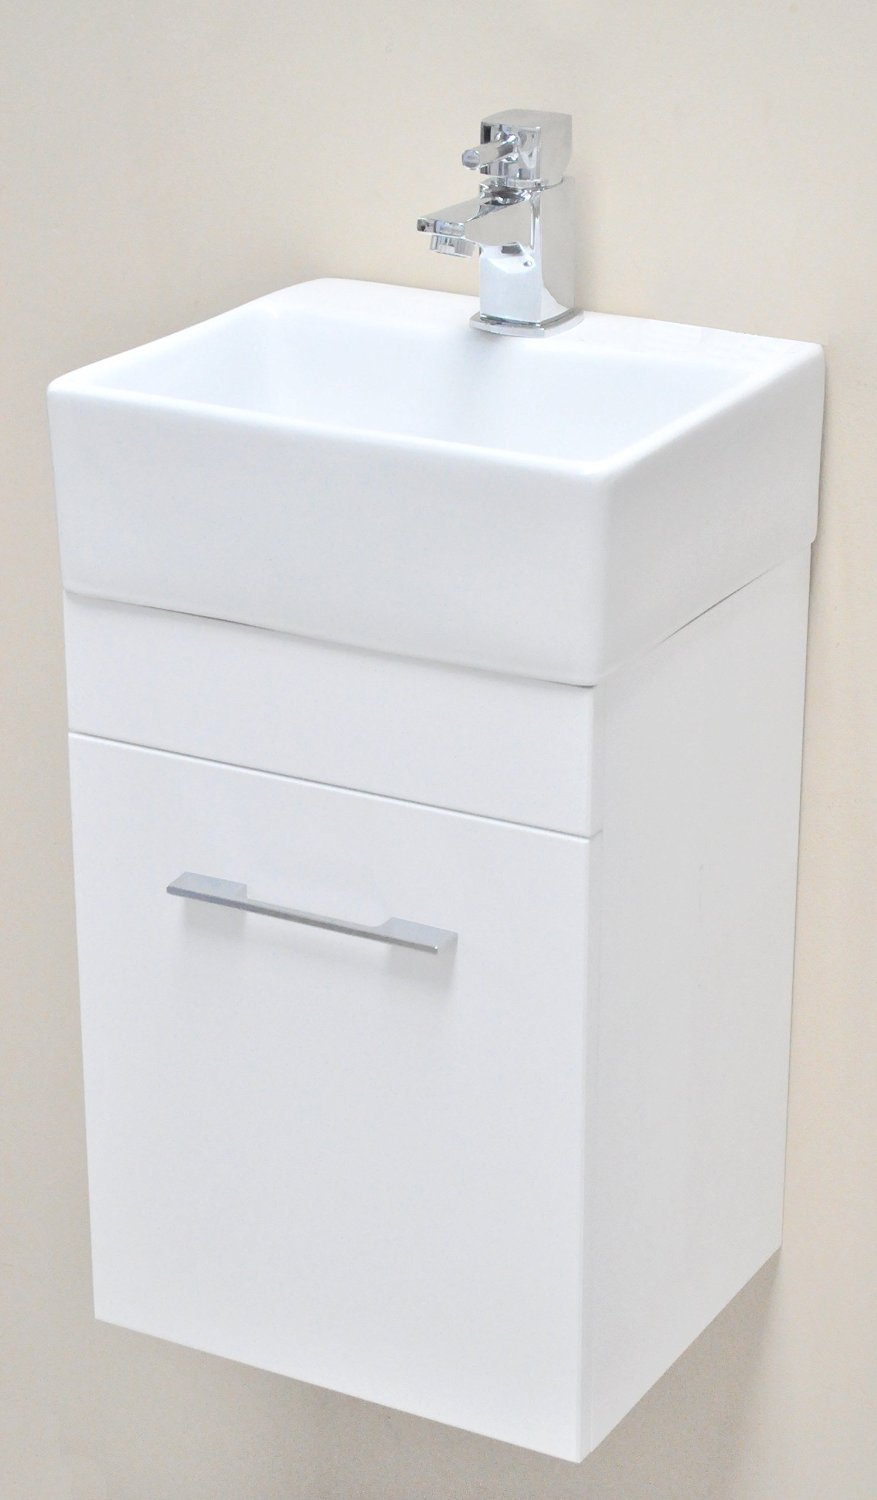 Salina Mito White Square Basin Wall Hung Cloakroom Furniture Vanity Unit Compact Mini 330 X 290 + York Mini Tap Waste E-PLUMB SALINA+MITOWHWHITE+Y07